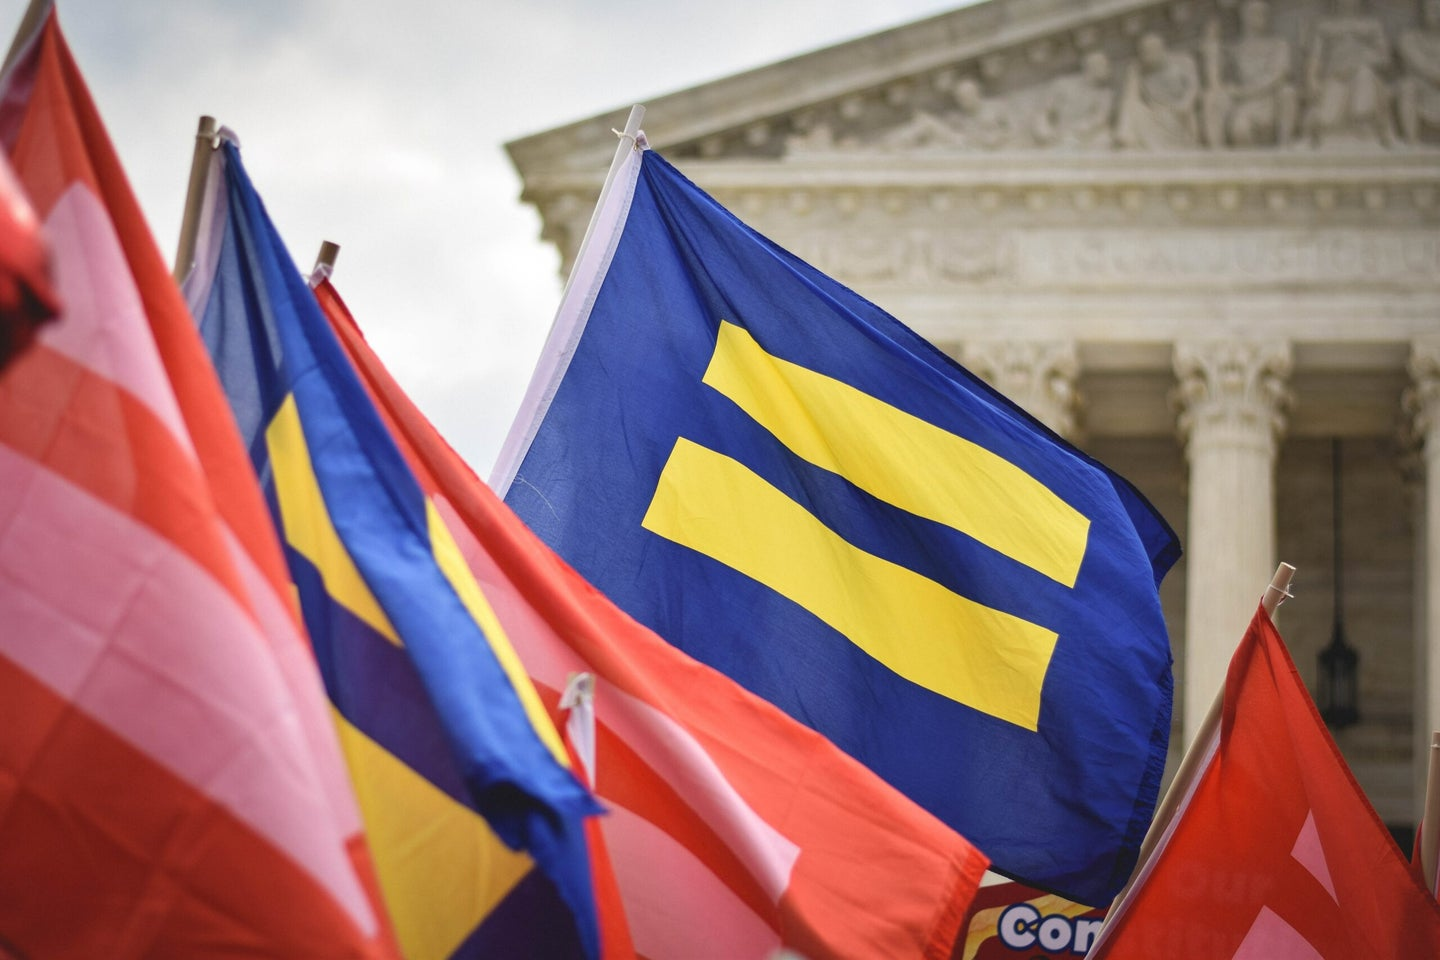 LGBTQIA+ advocates rally in front of the Supreme Court of the United States.